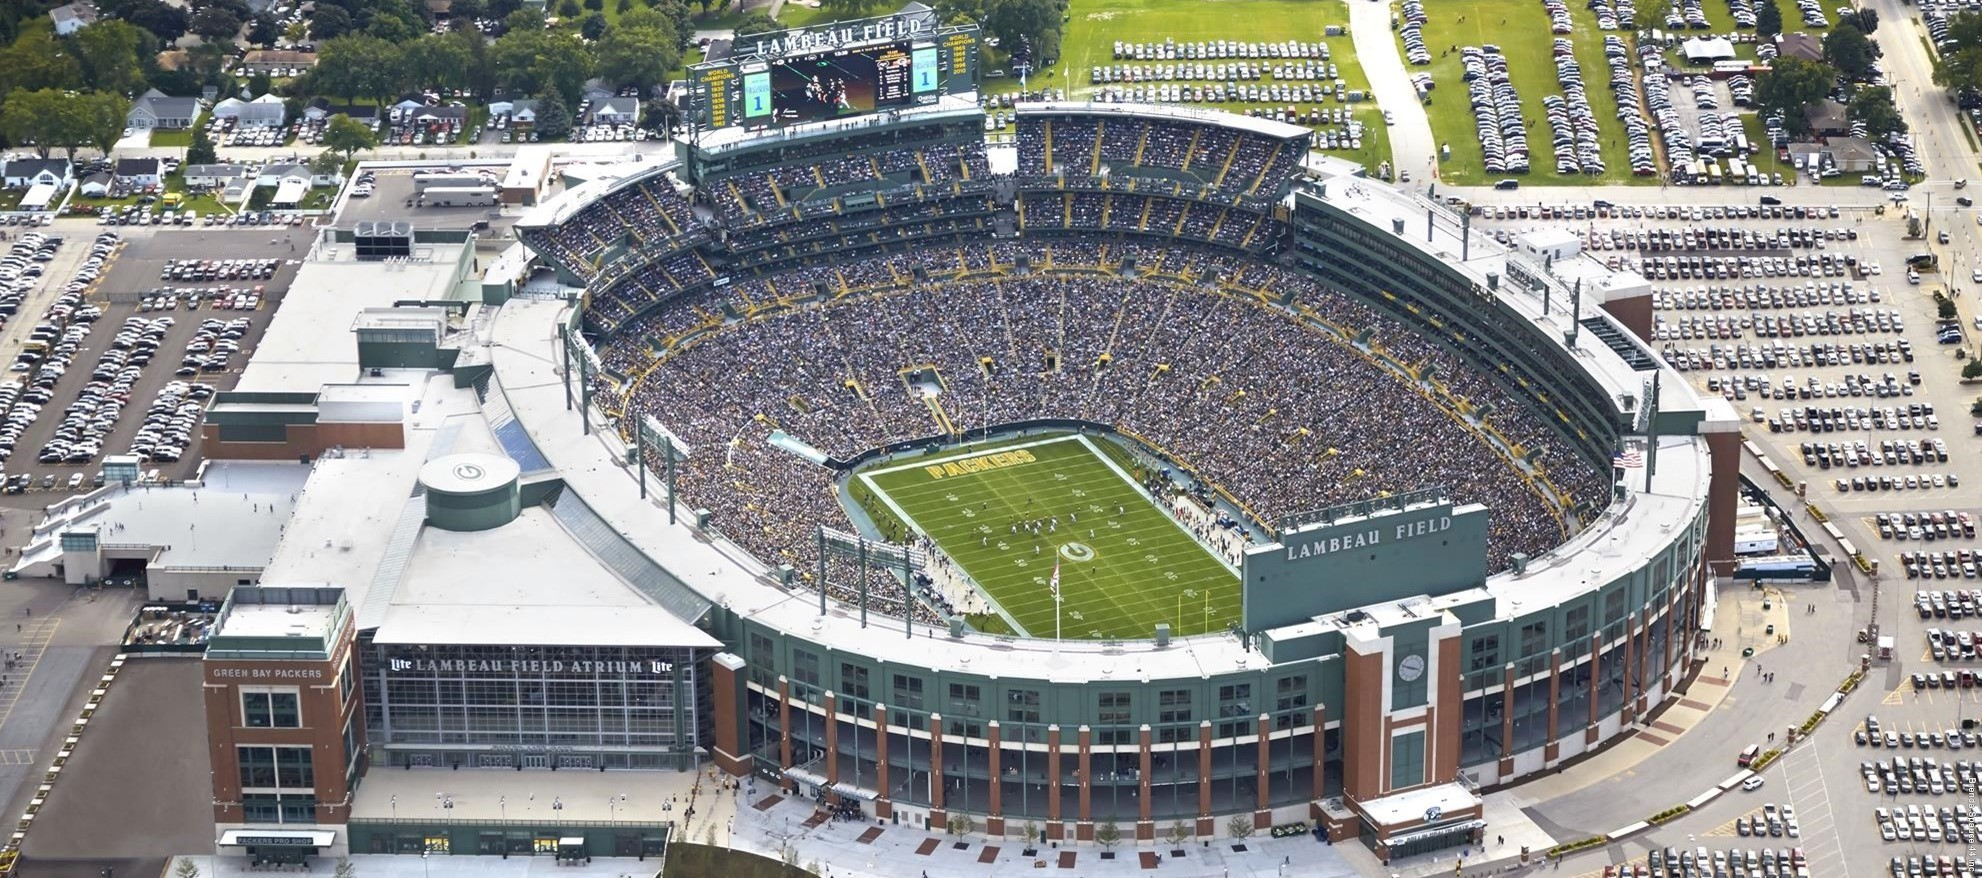 https://i0.wp.com/footballstadiumdigest.com/wp-content/uploads/2016/08/lambeau-field.jpg